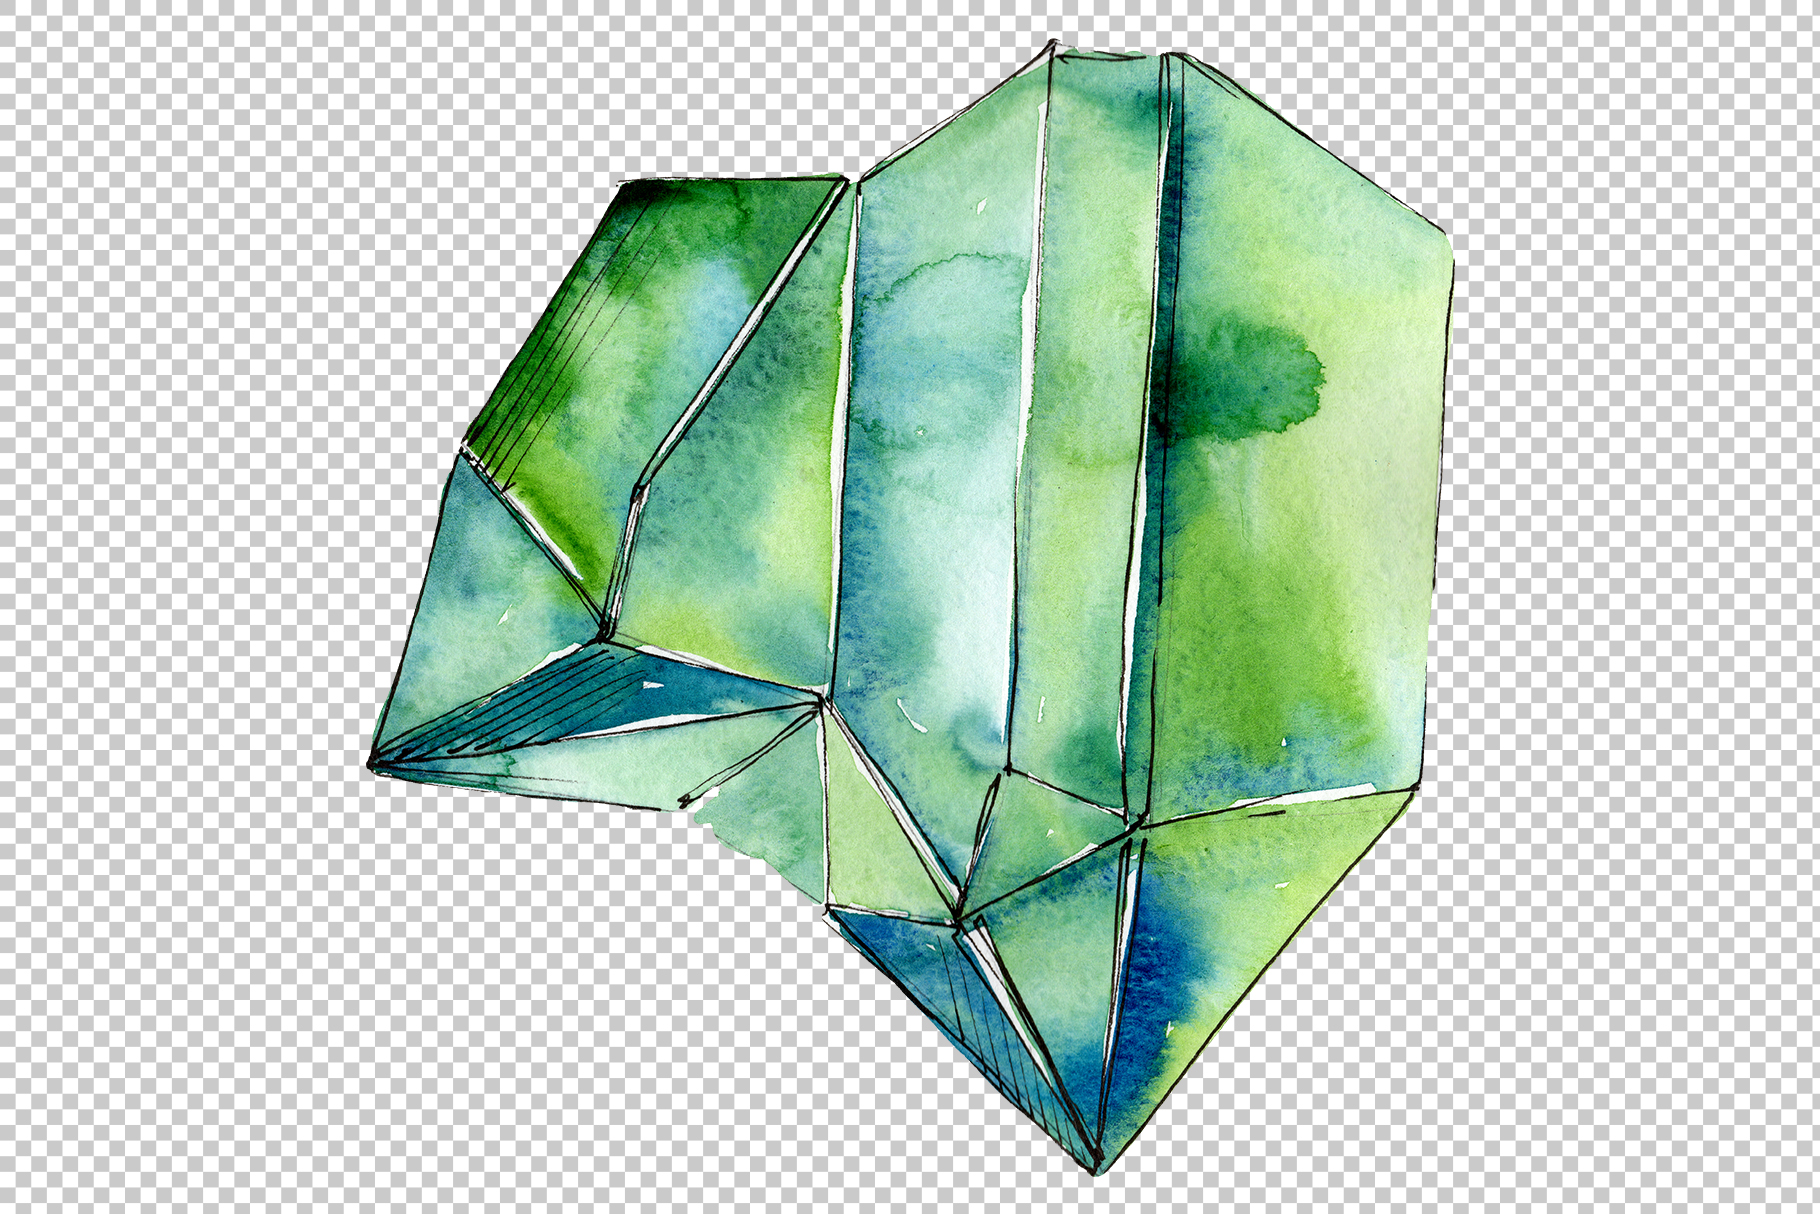 Crystals orange and green Watercolor png example image 4